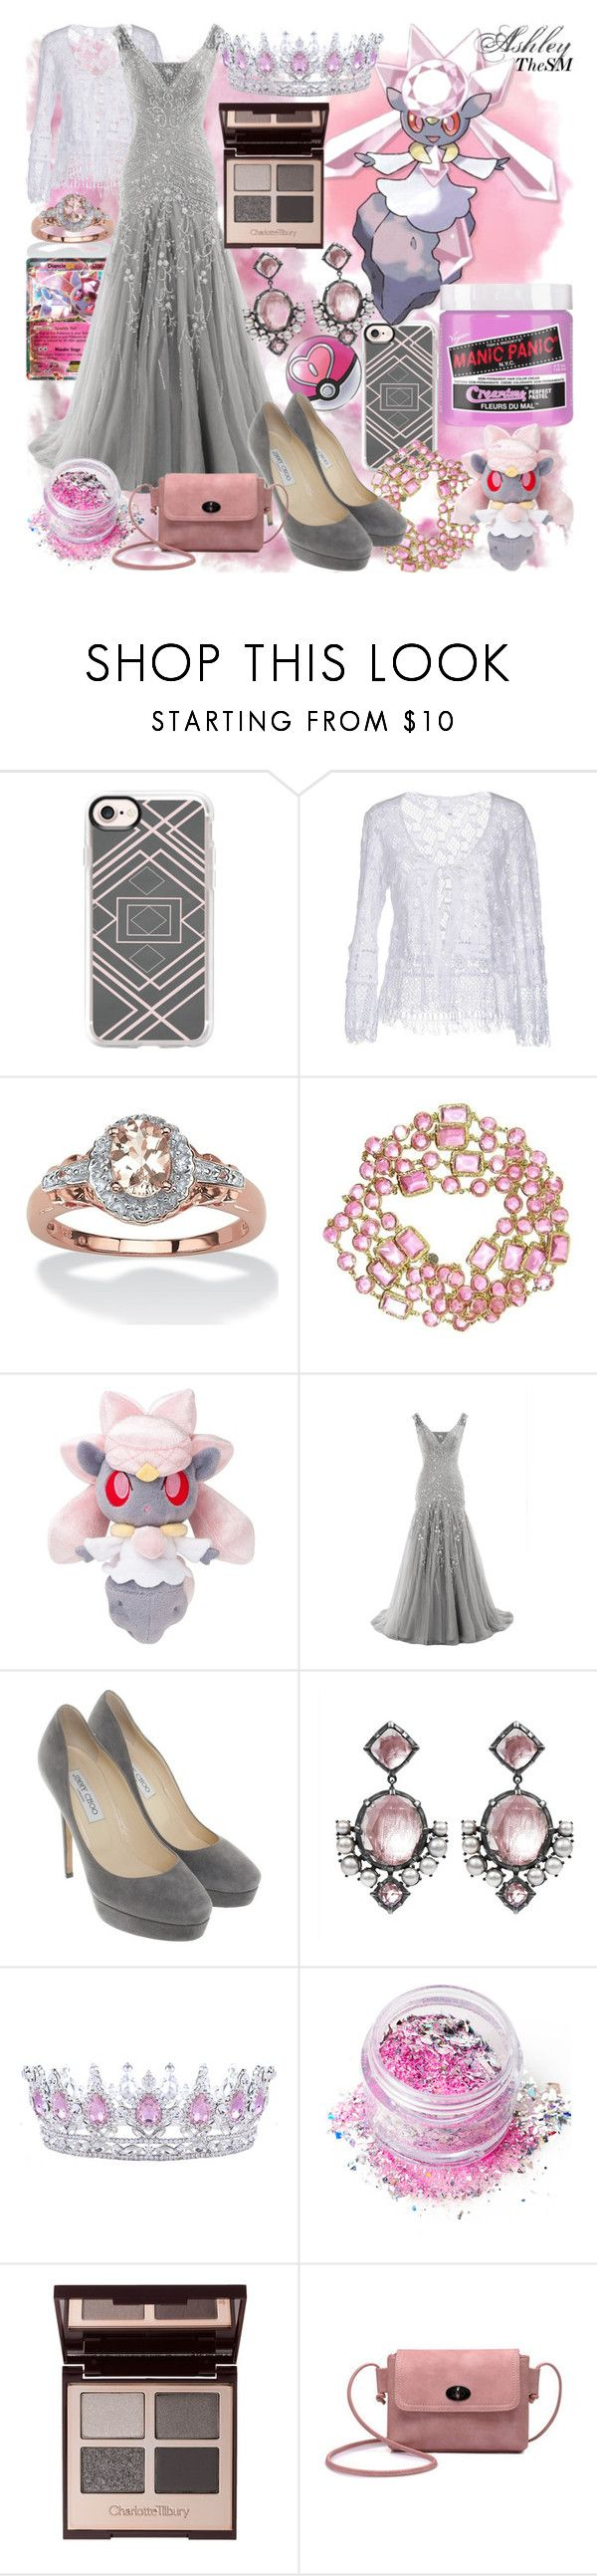 """""""Fairy Type Trainer - Diancie"""" by ashleythesm ❤ liked on Polyvore featuring Casetify, Temptation, Palm Beach Jewelry, Chanel, Jimmy Choo, Larkspur & Hawk, In Your Dreams and Charlotte Tilbury"""